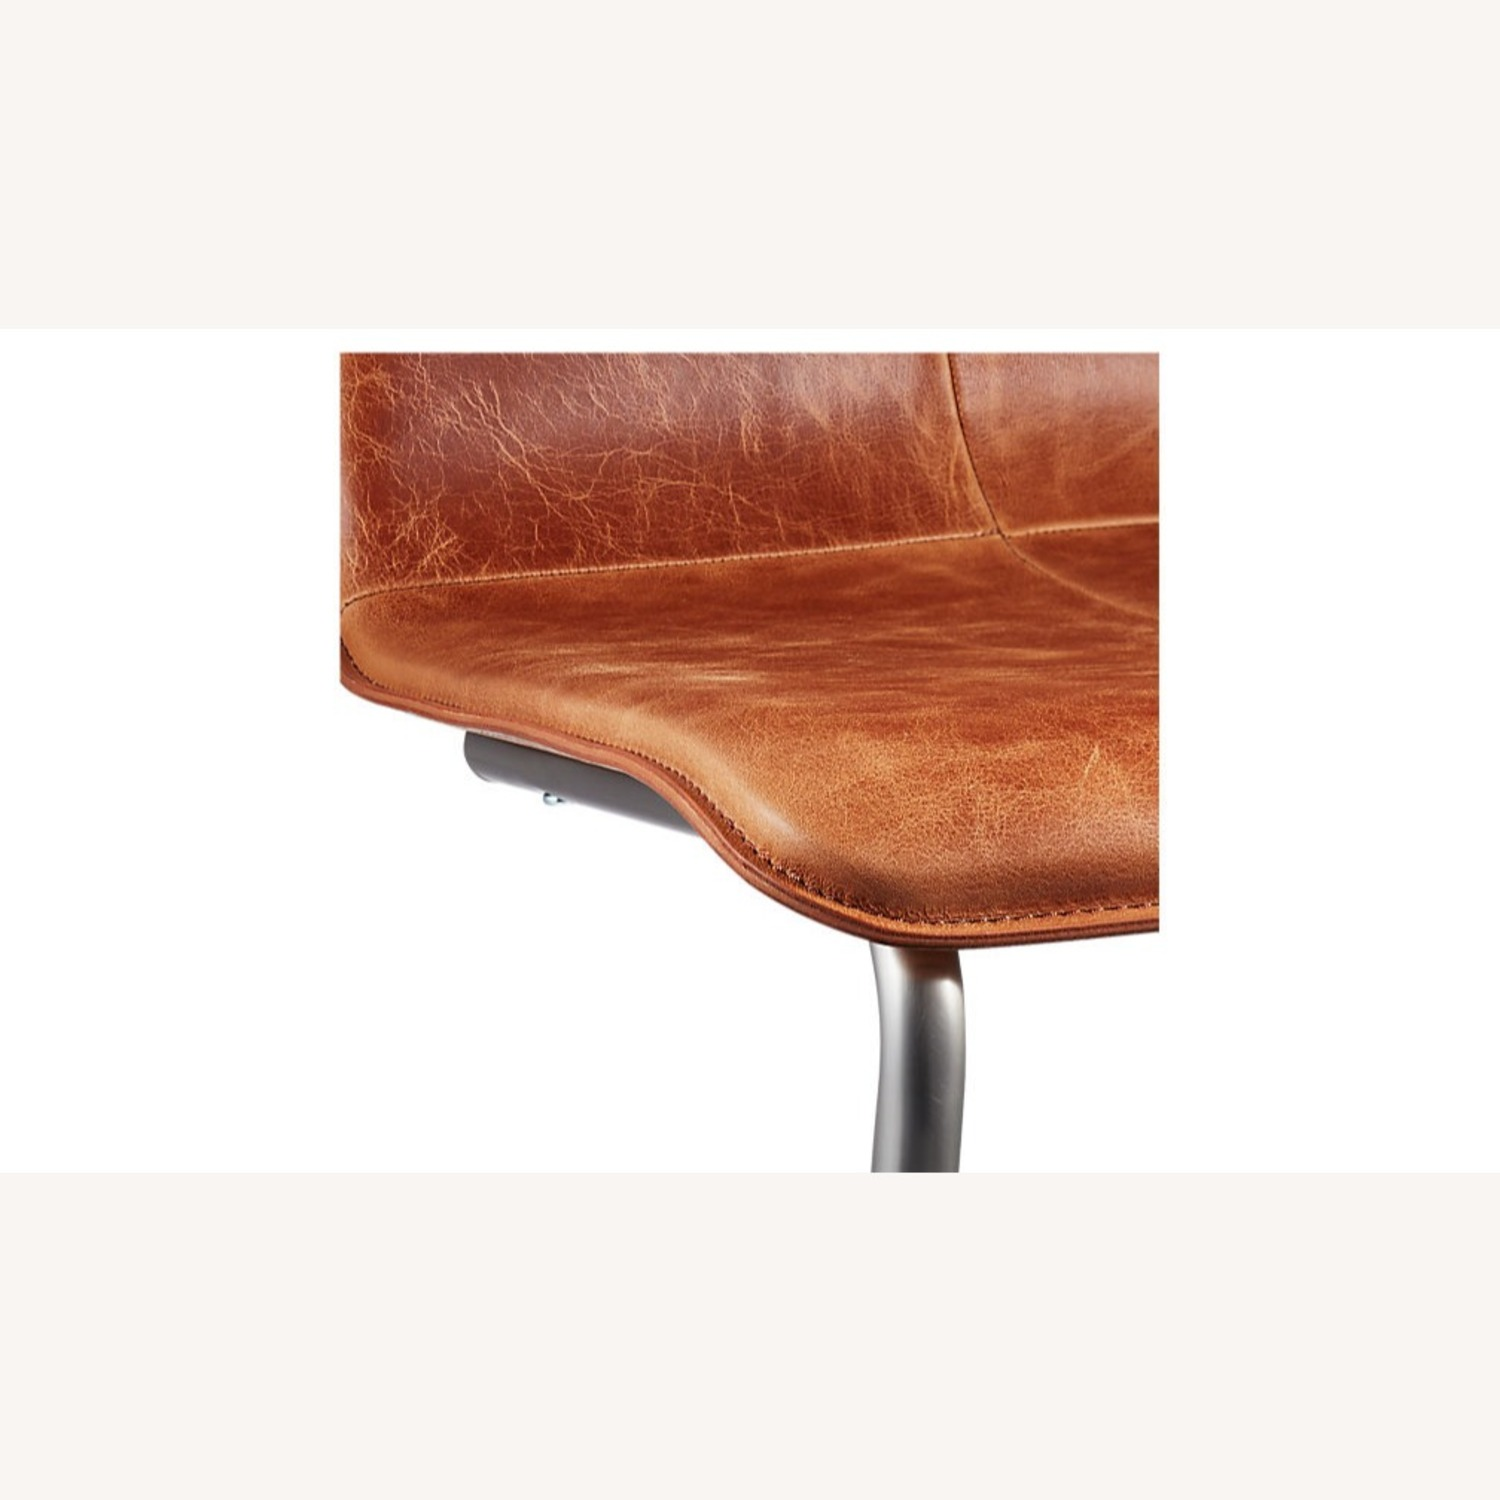 CB2 Pony Brown Leather Chair - image-8